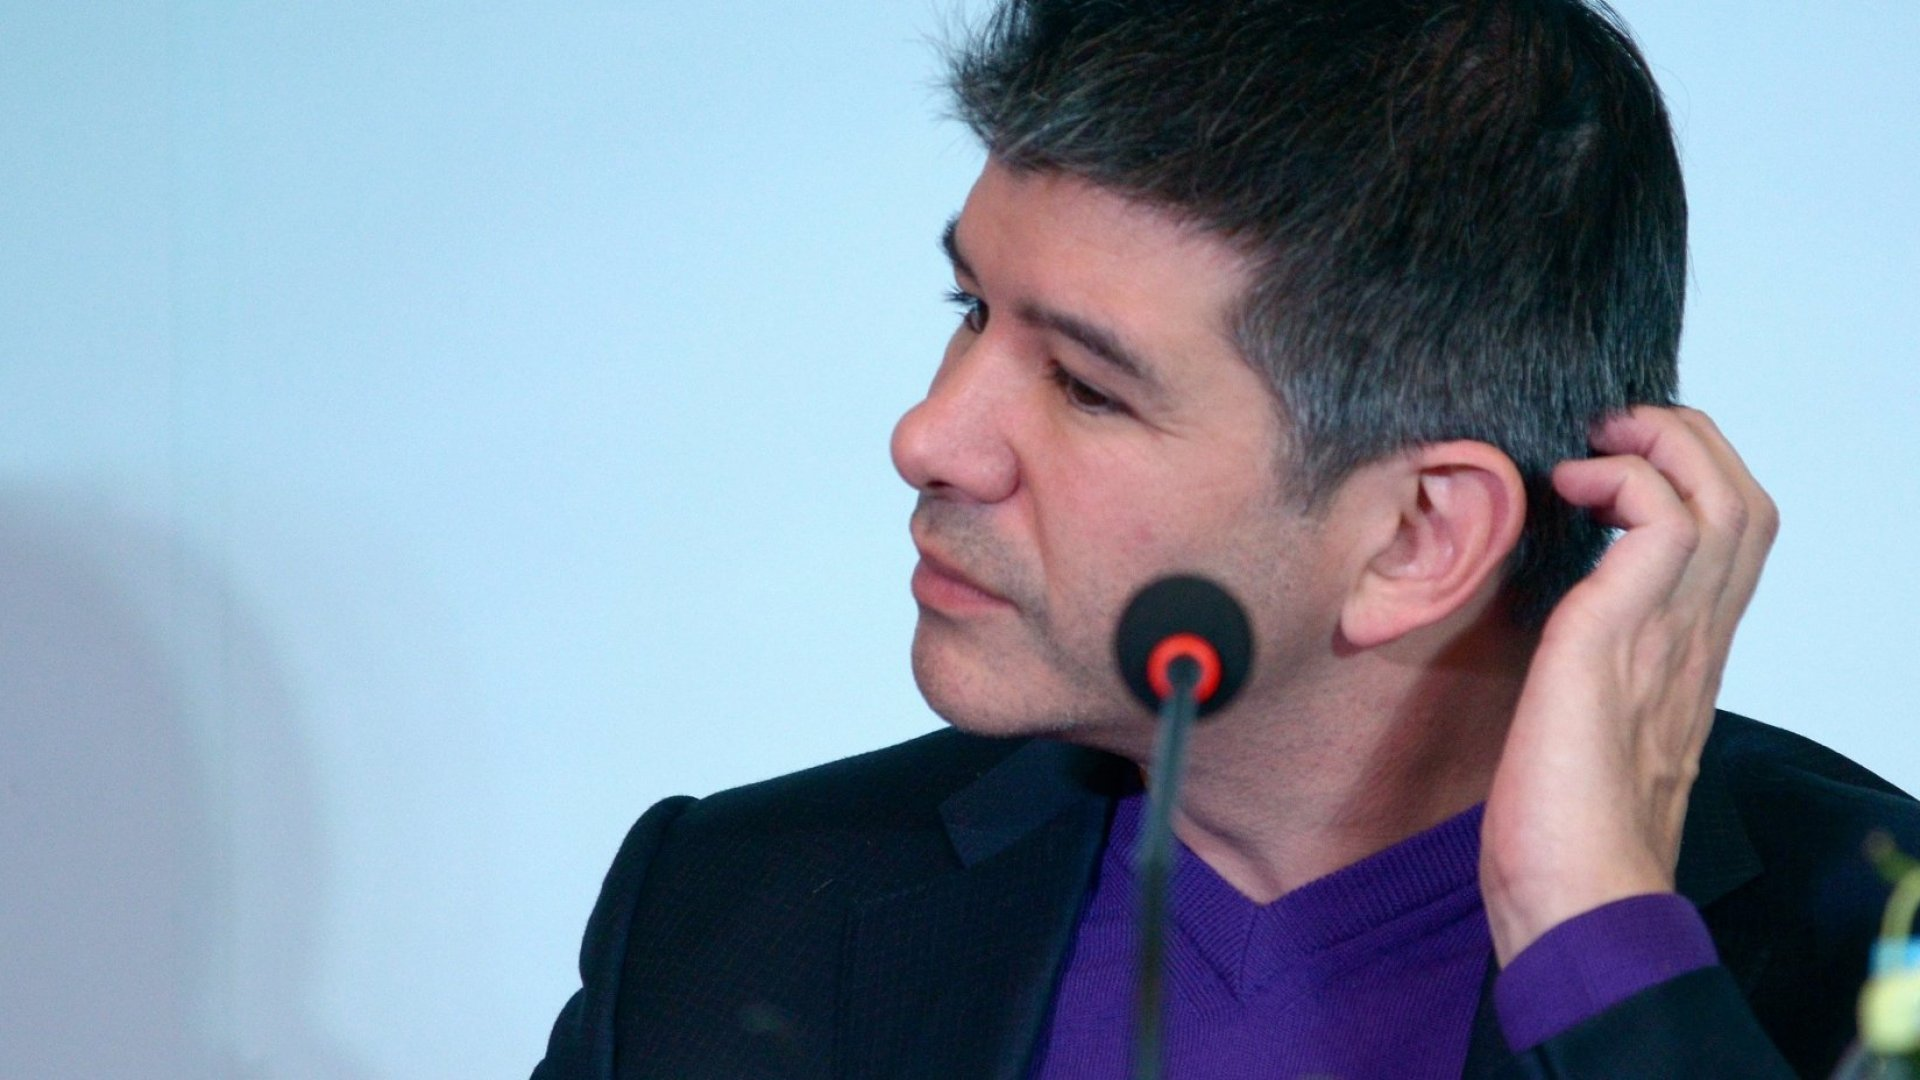 Uber Paid $100,000 to Cover Up a Cyberattack That Exposed Personal Data of 57 Million People in 2016